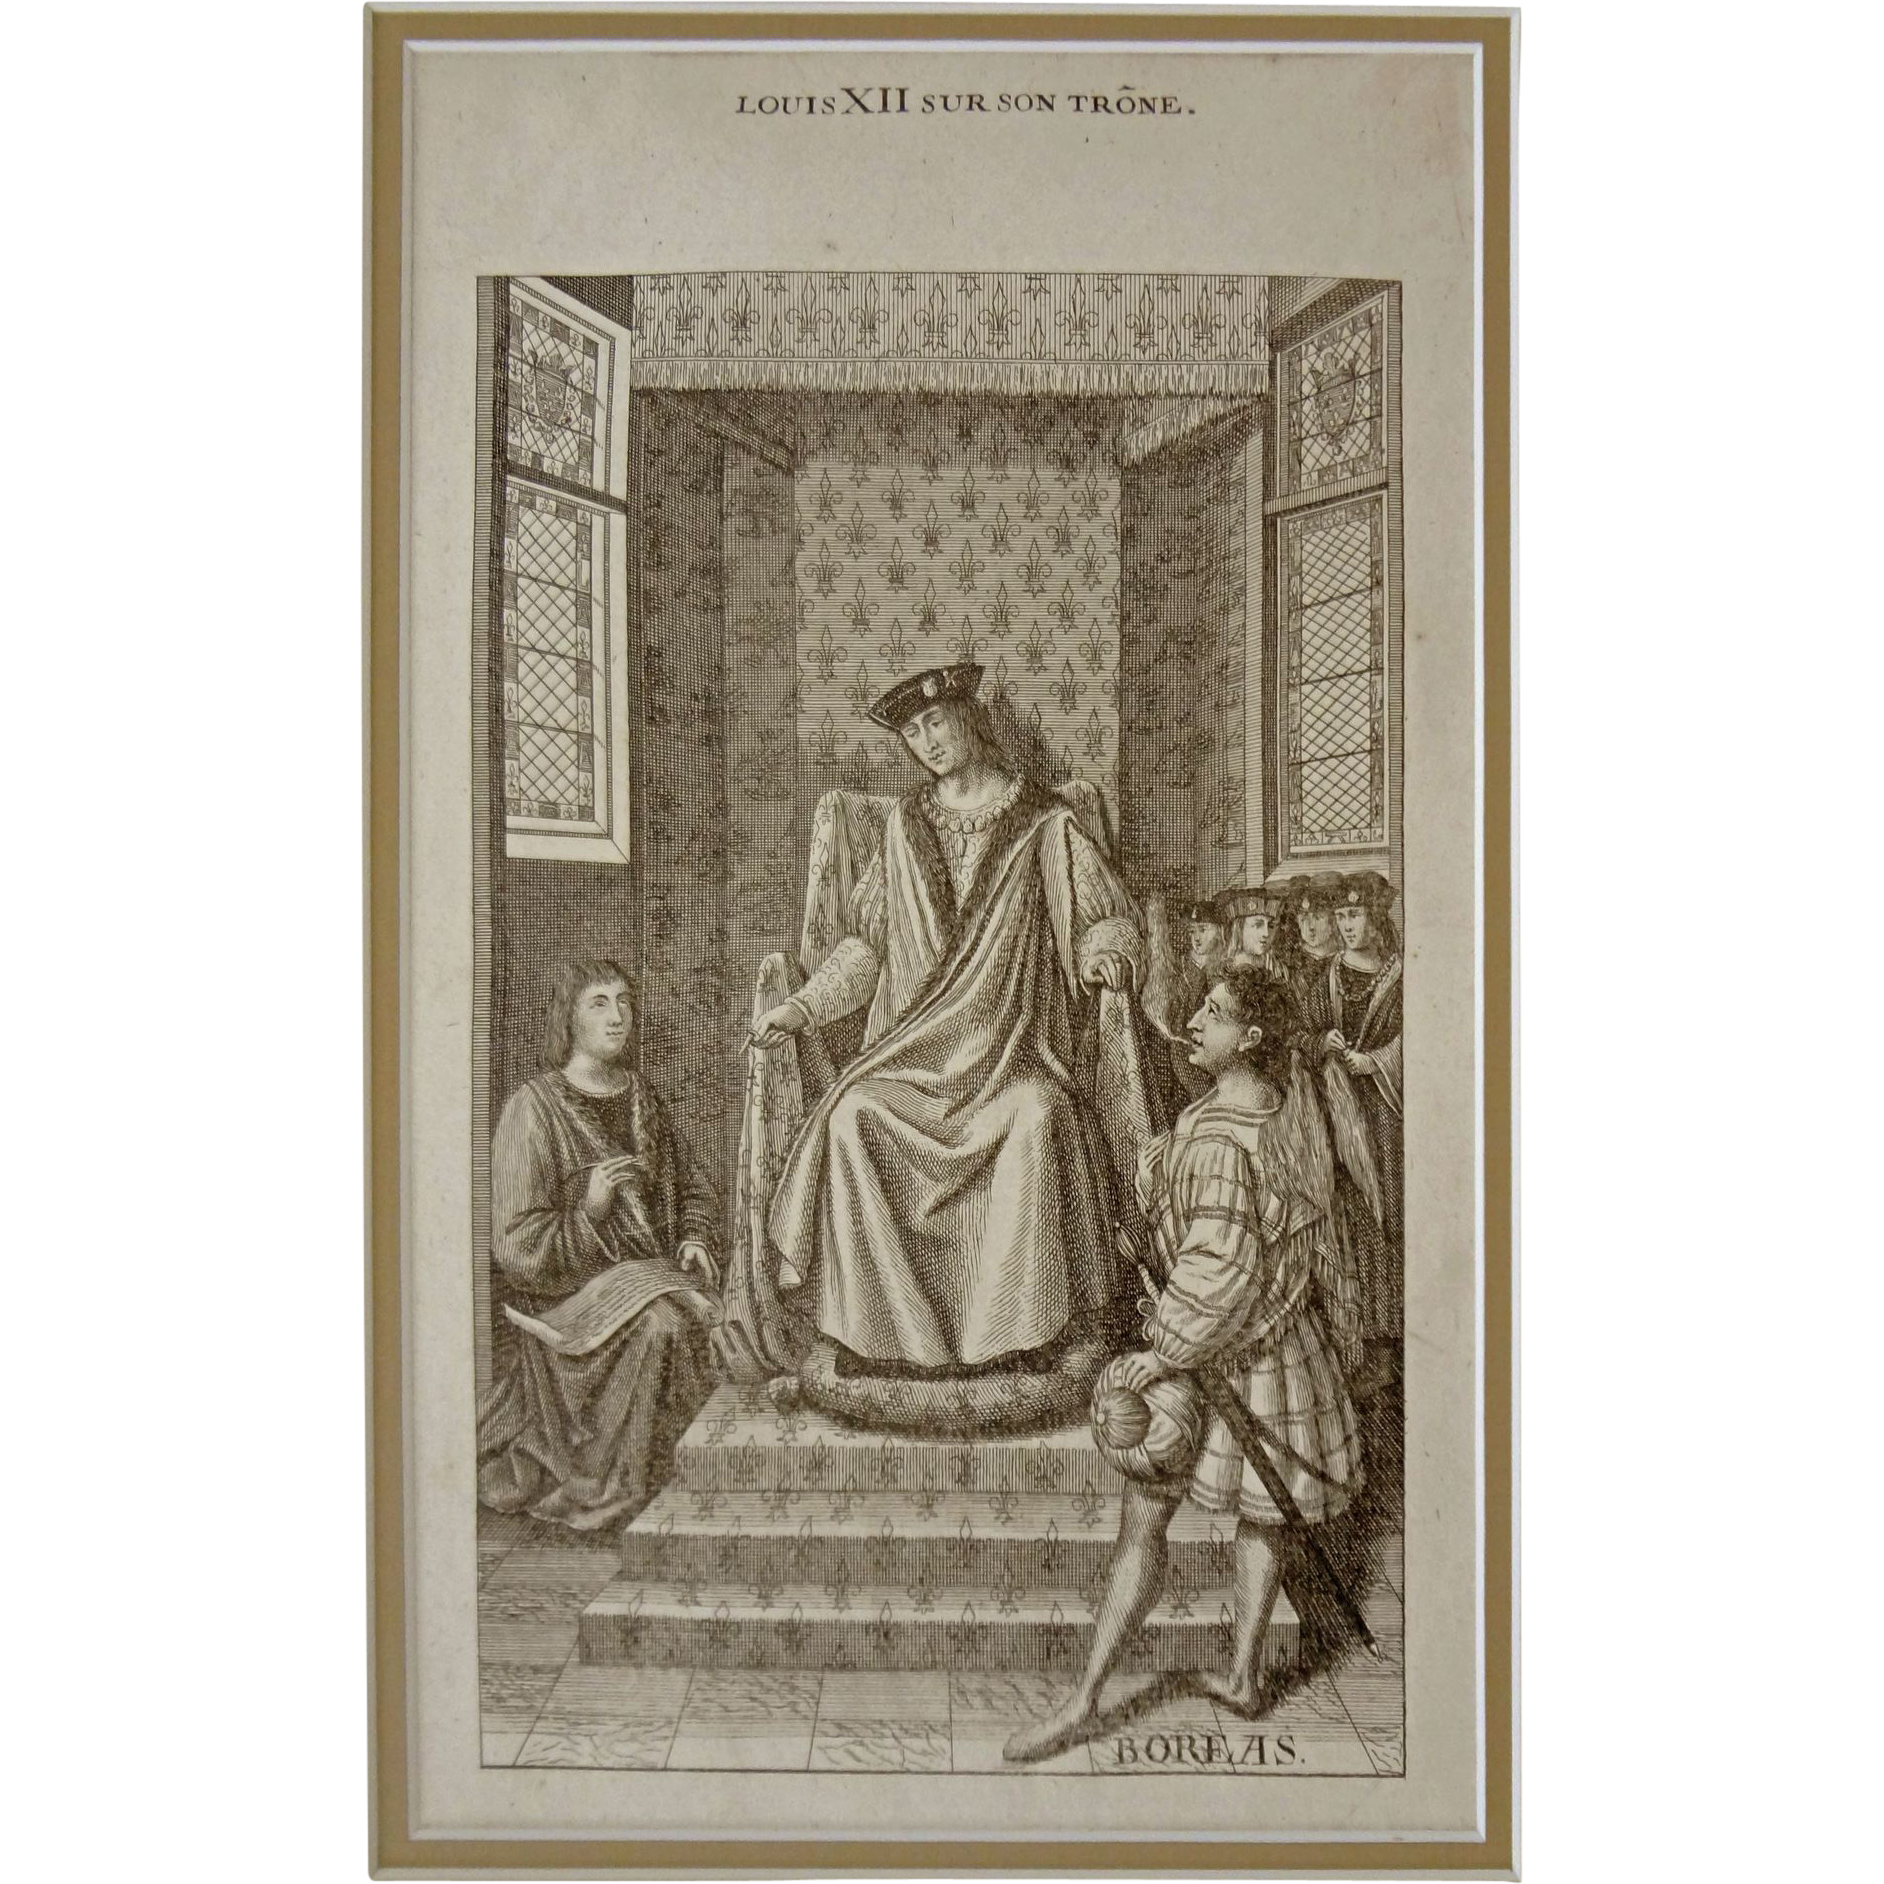 Louis XII sur son Trone Steel Engraving after Jean Bourdichon  - 19th Century, France